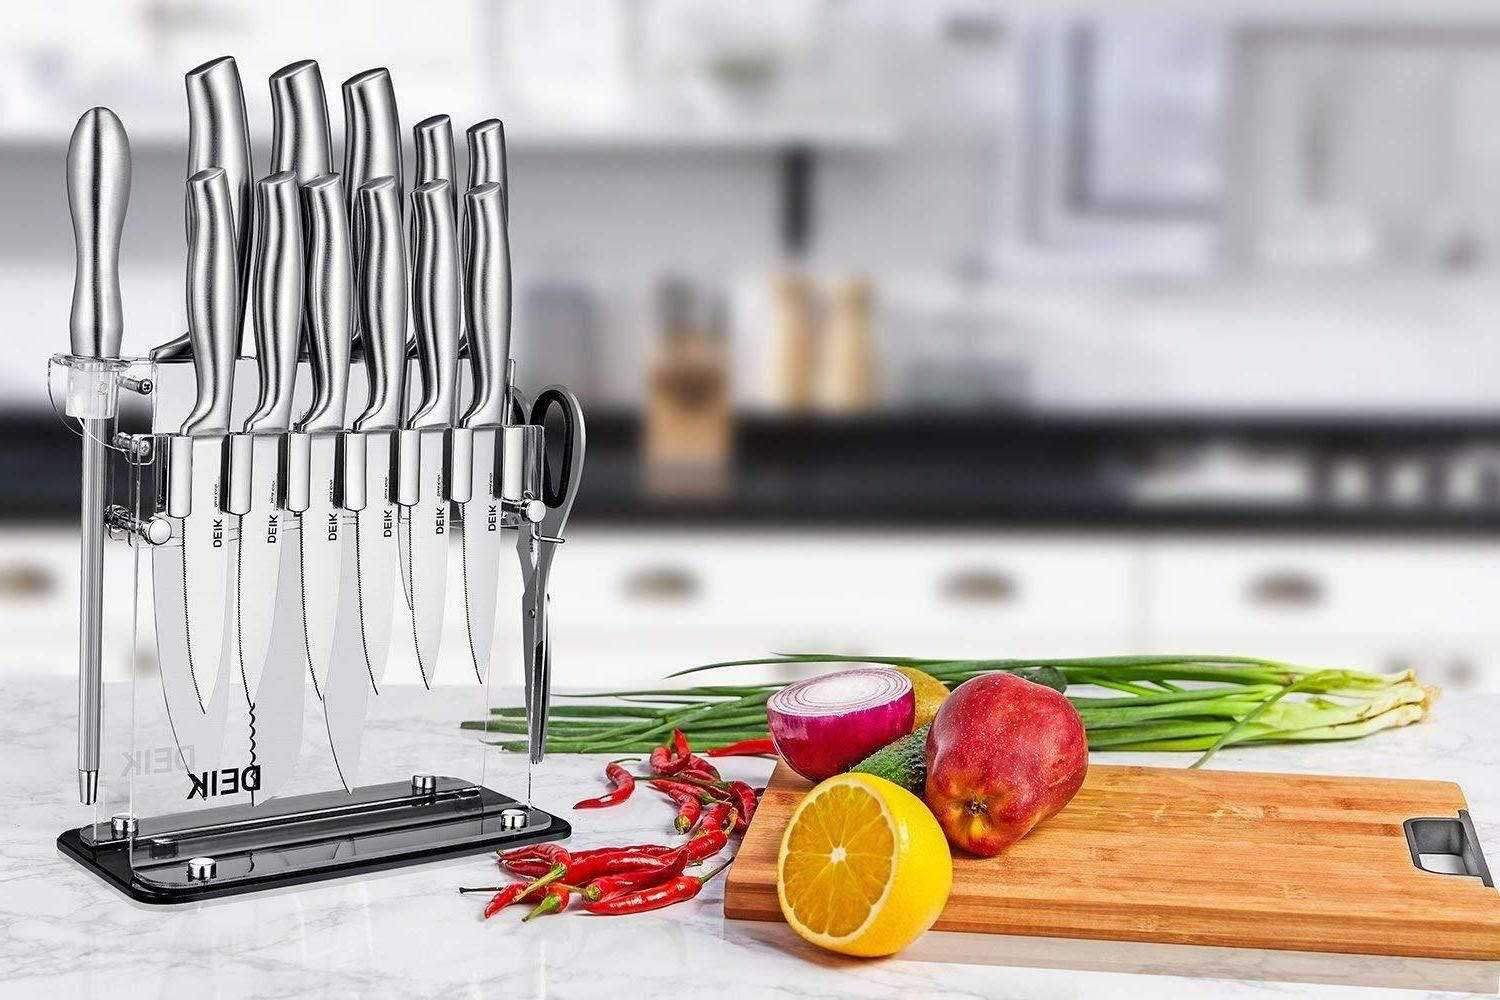 Knife 14 Piece Knife Stainless Steel